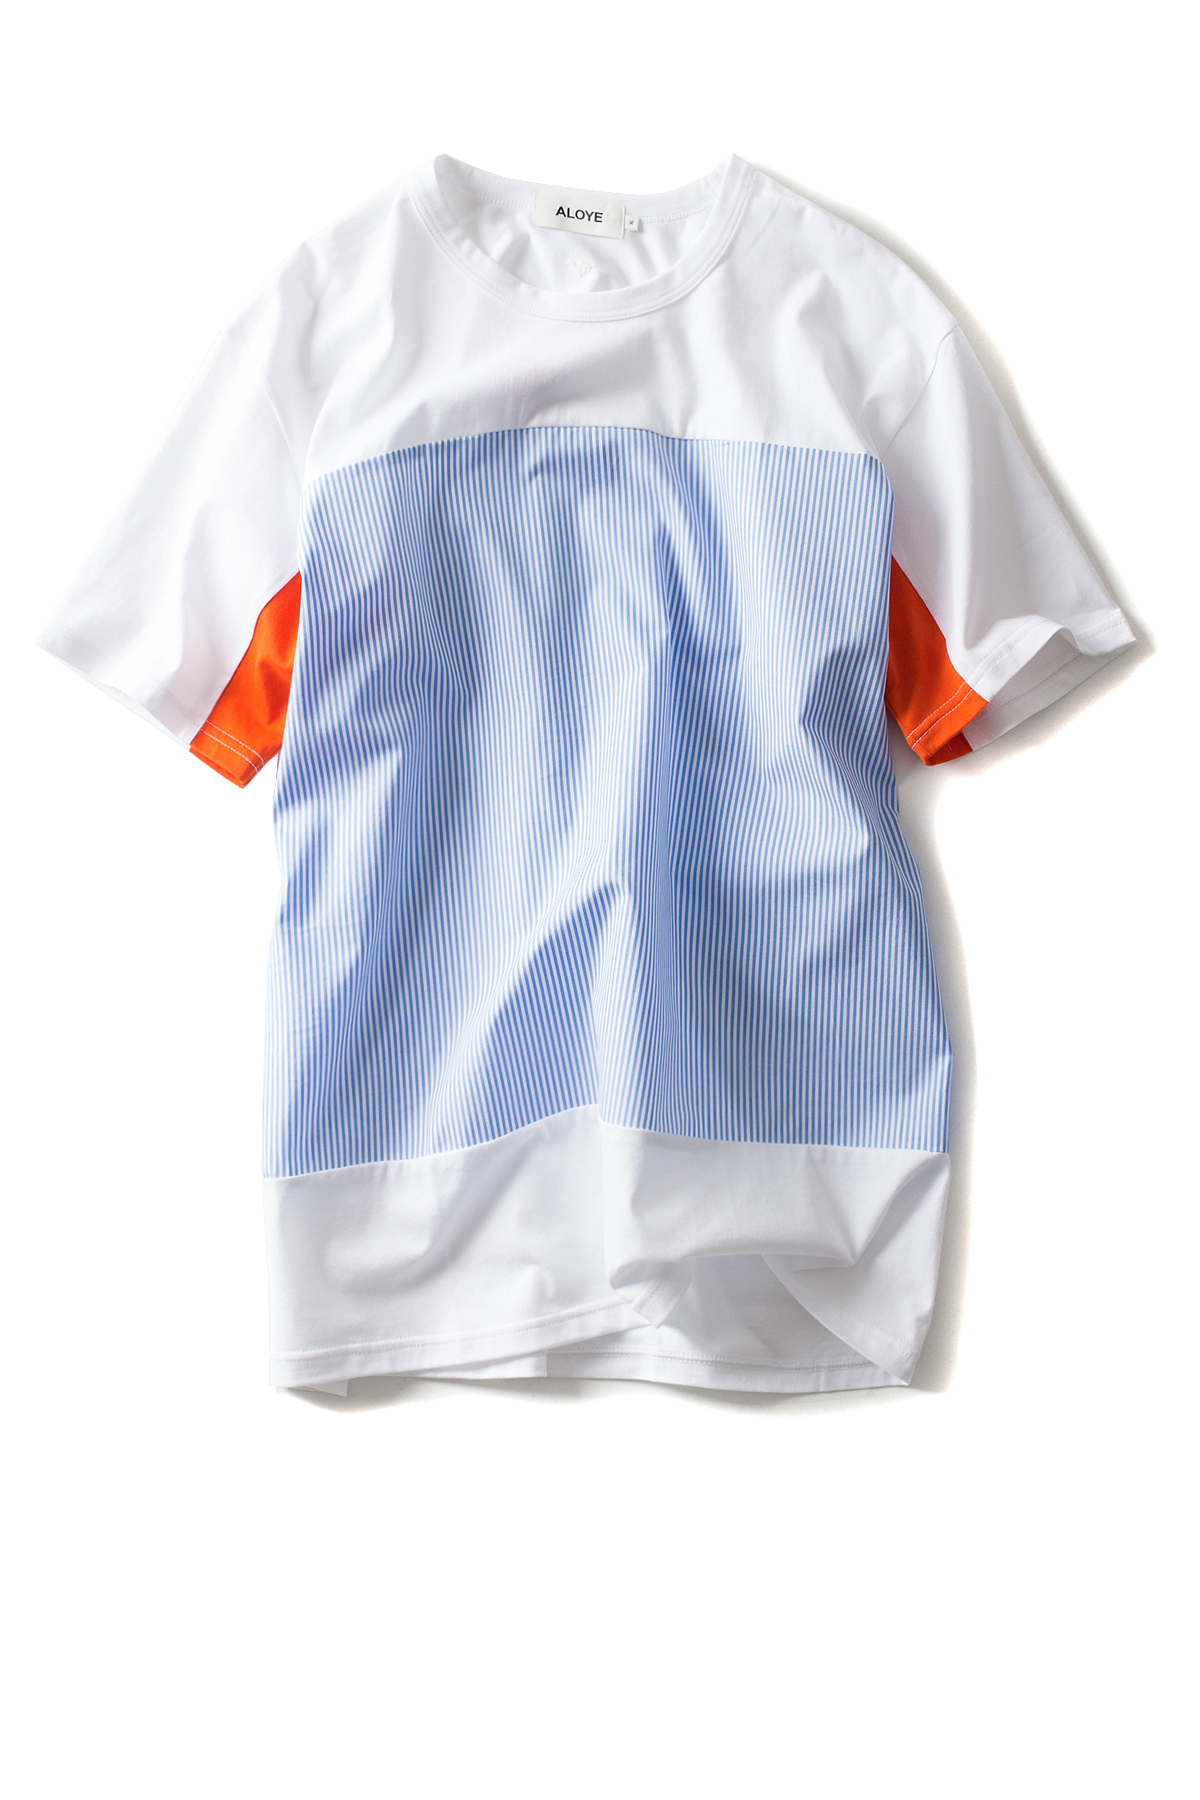 ALOYE : Shirt Fabrics - Short Sleeve T-Shirt (L.Blue / Orange)